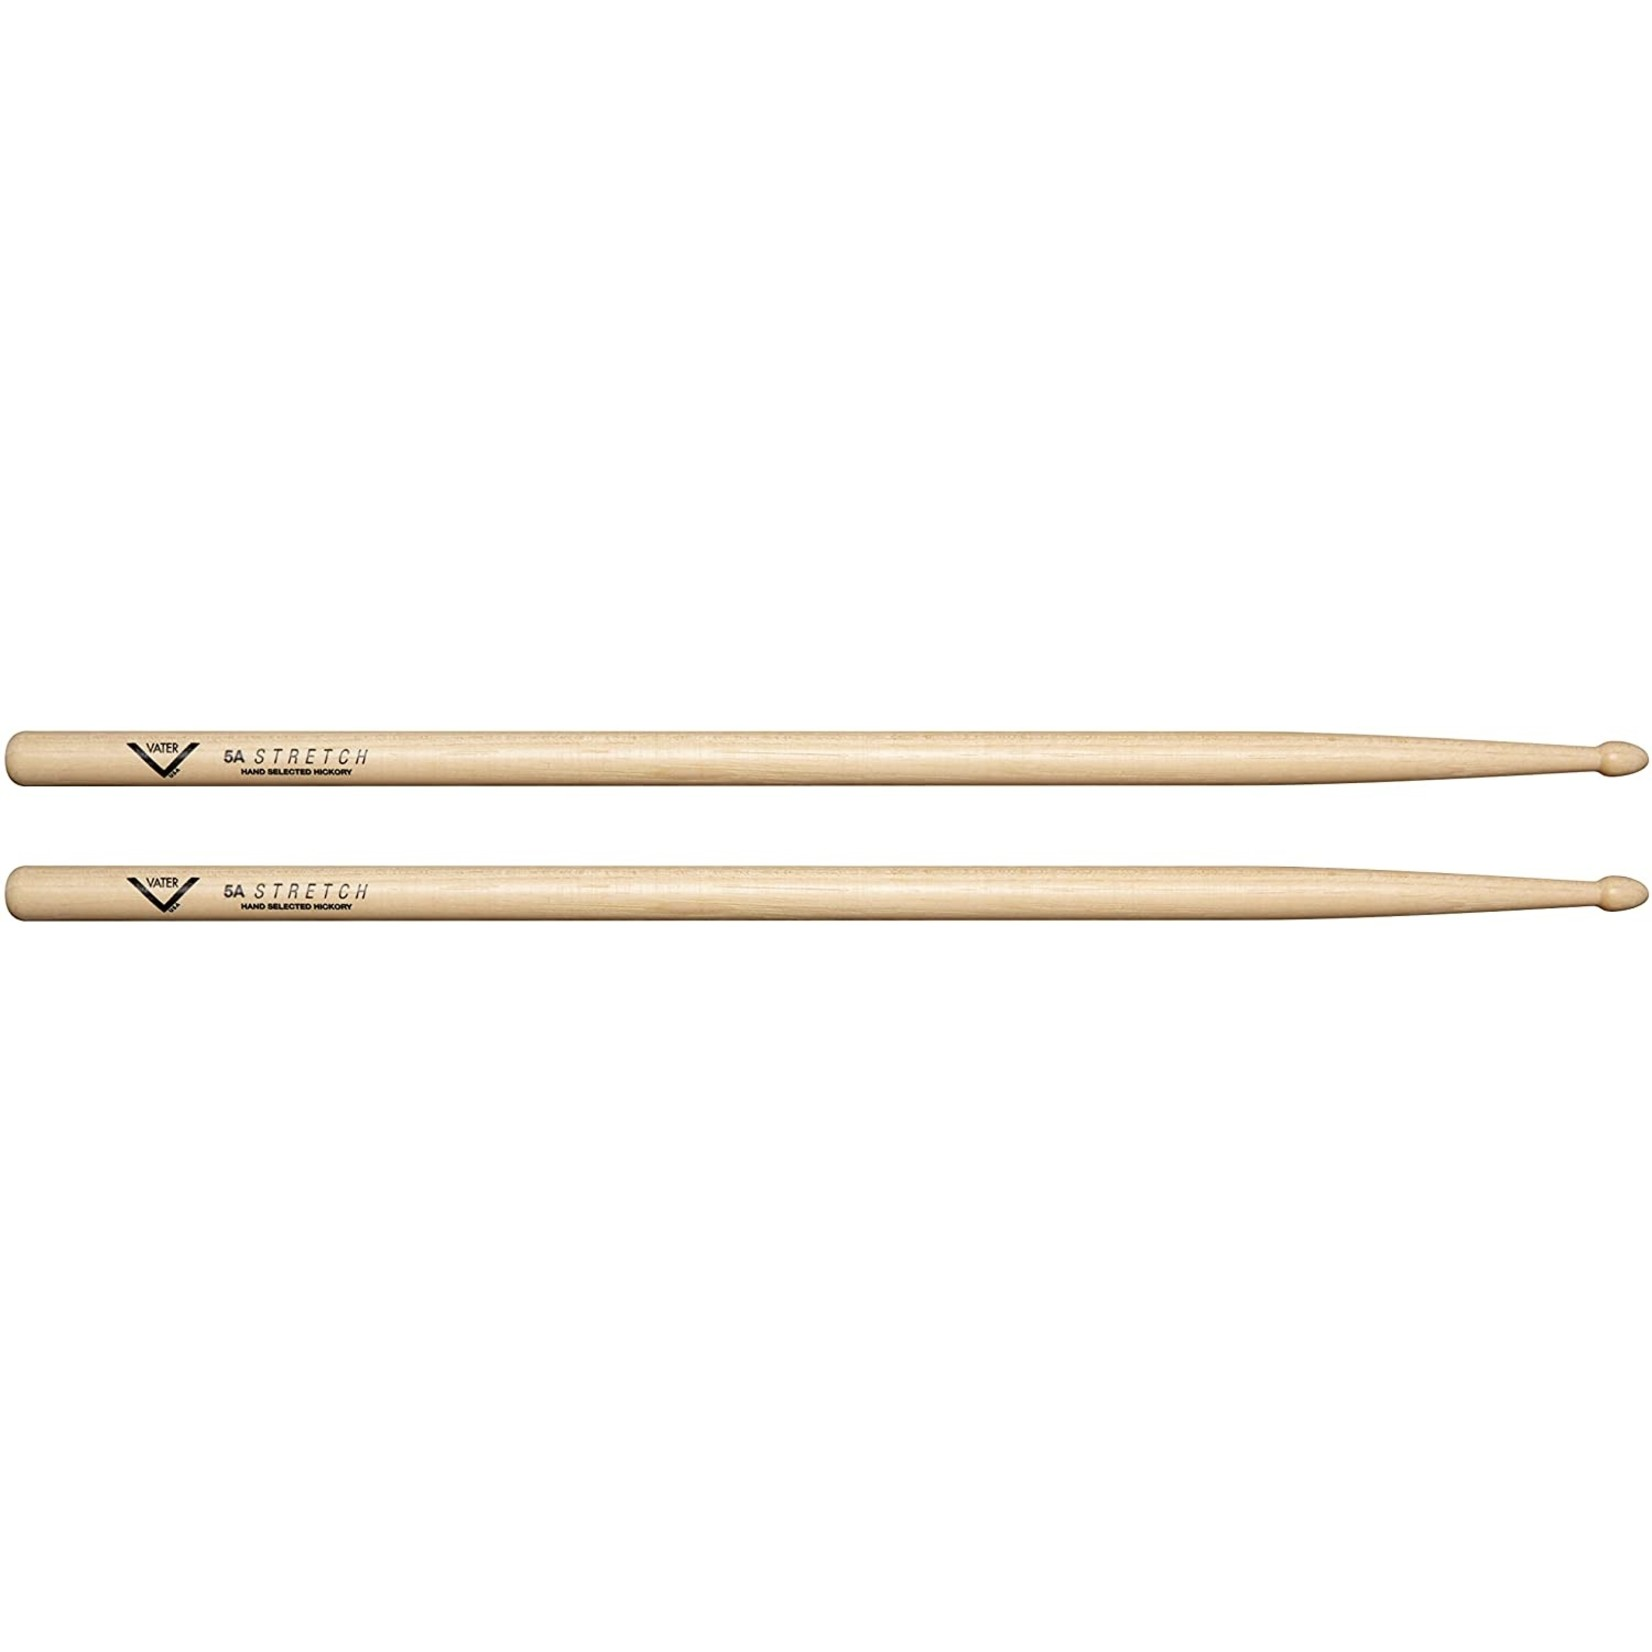 Vater Vater 5A Stretch